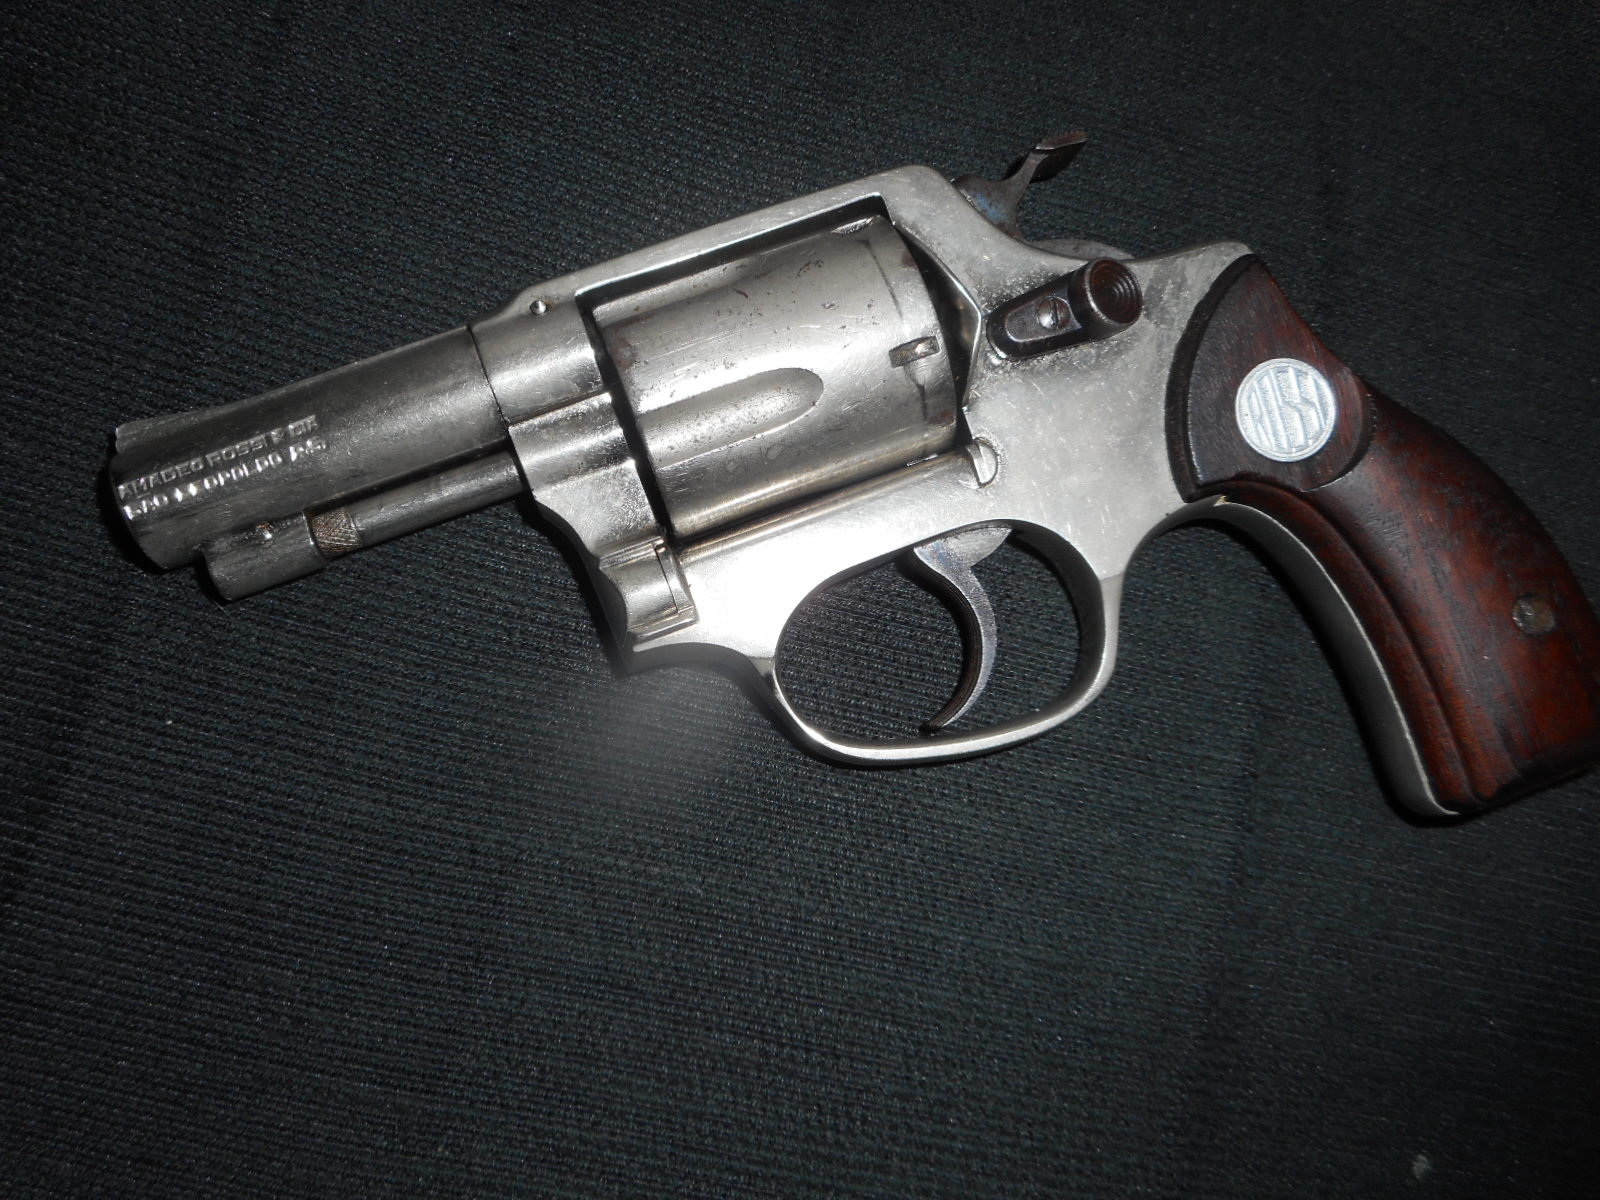 Rossi 38 special 1986 M66 N6- Any Info?